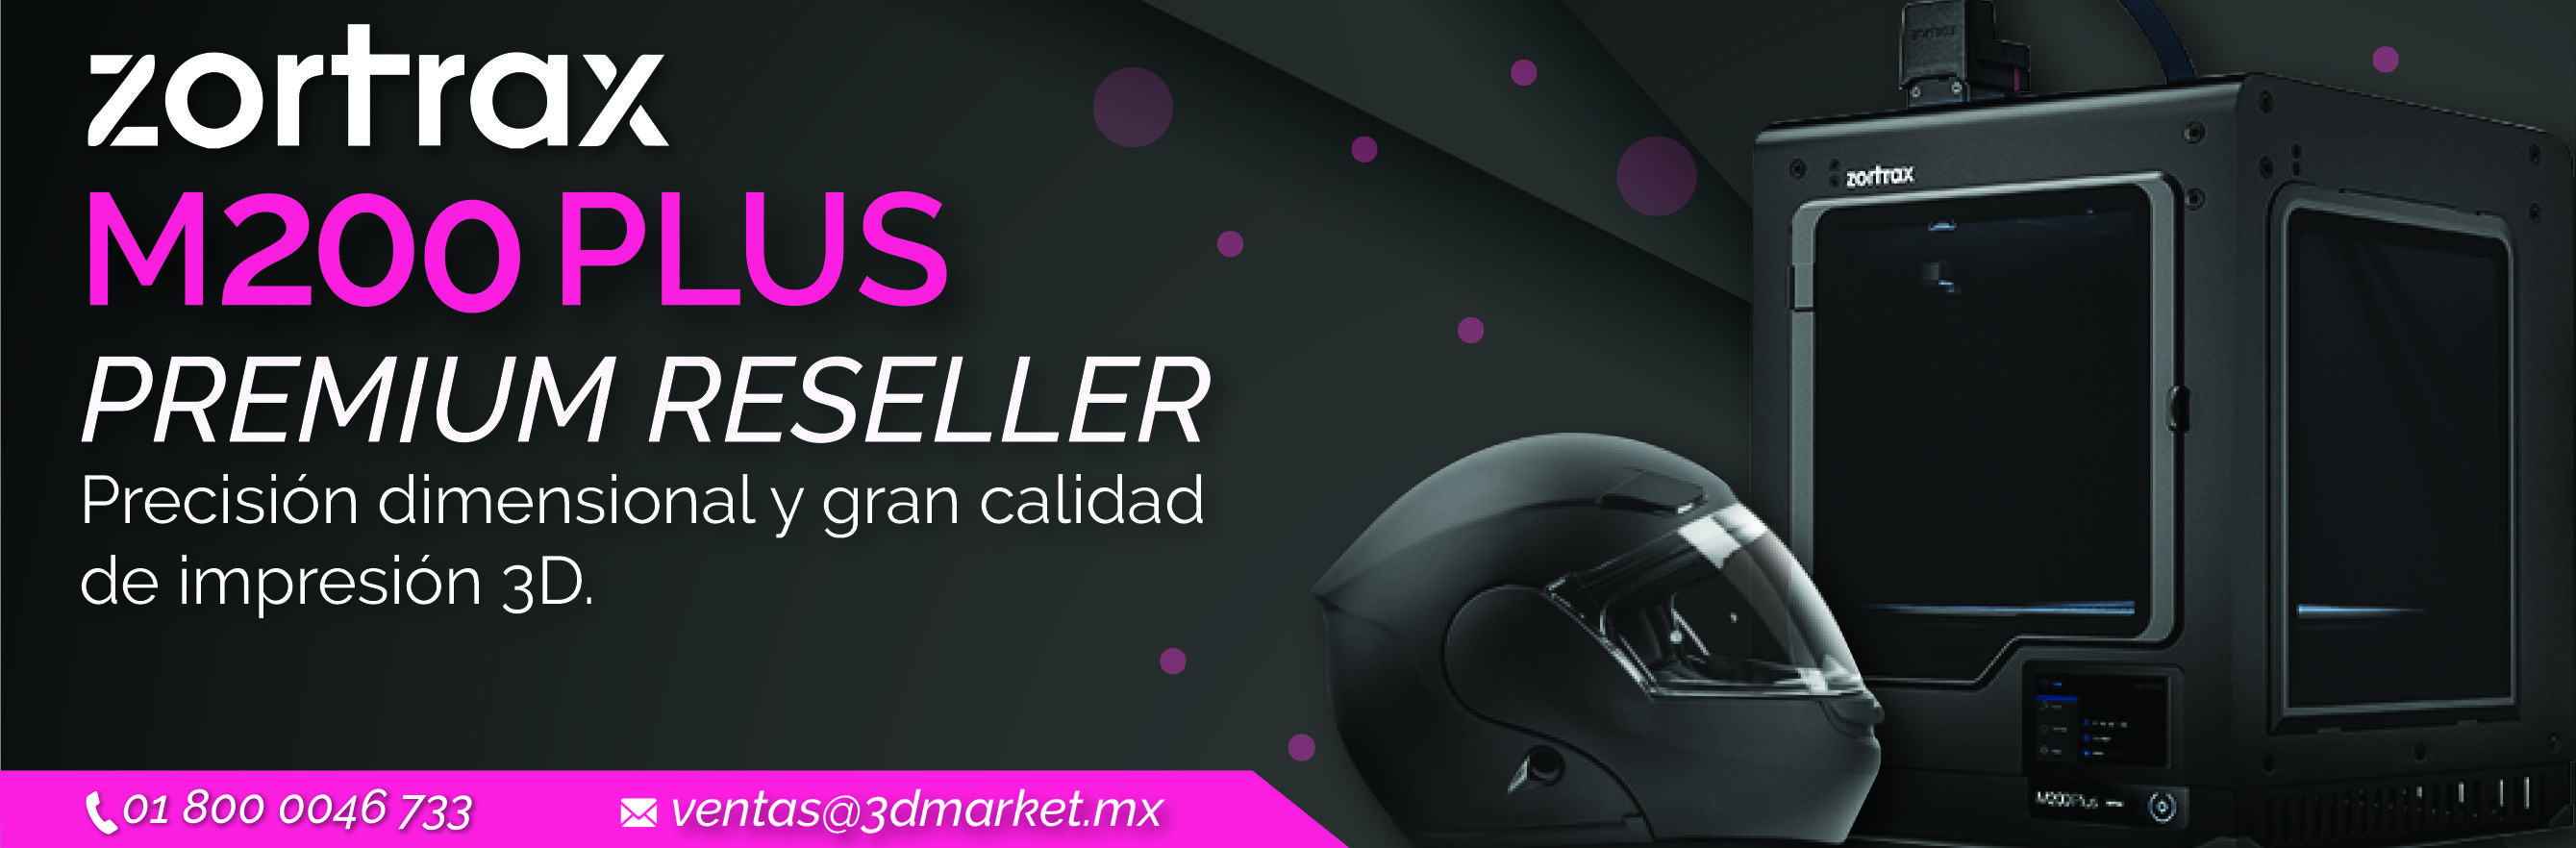 zortrax-venta-zortraxm200plus-mexico-compraaqui